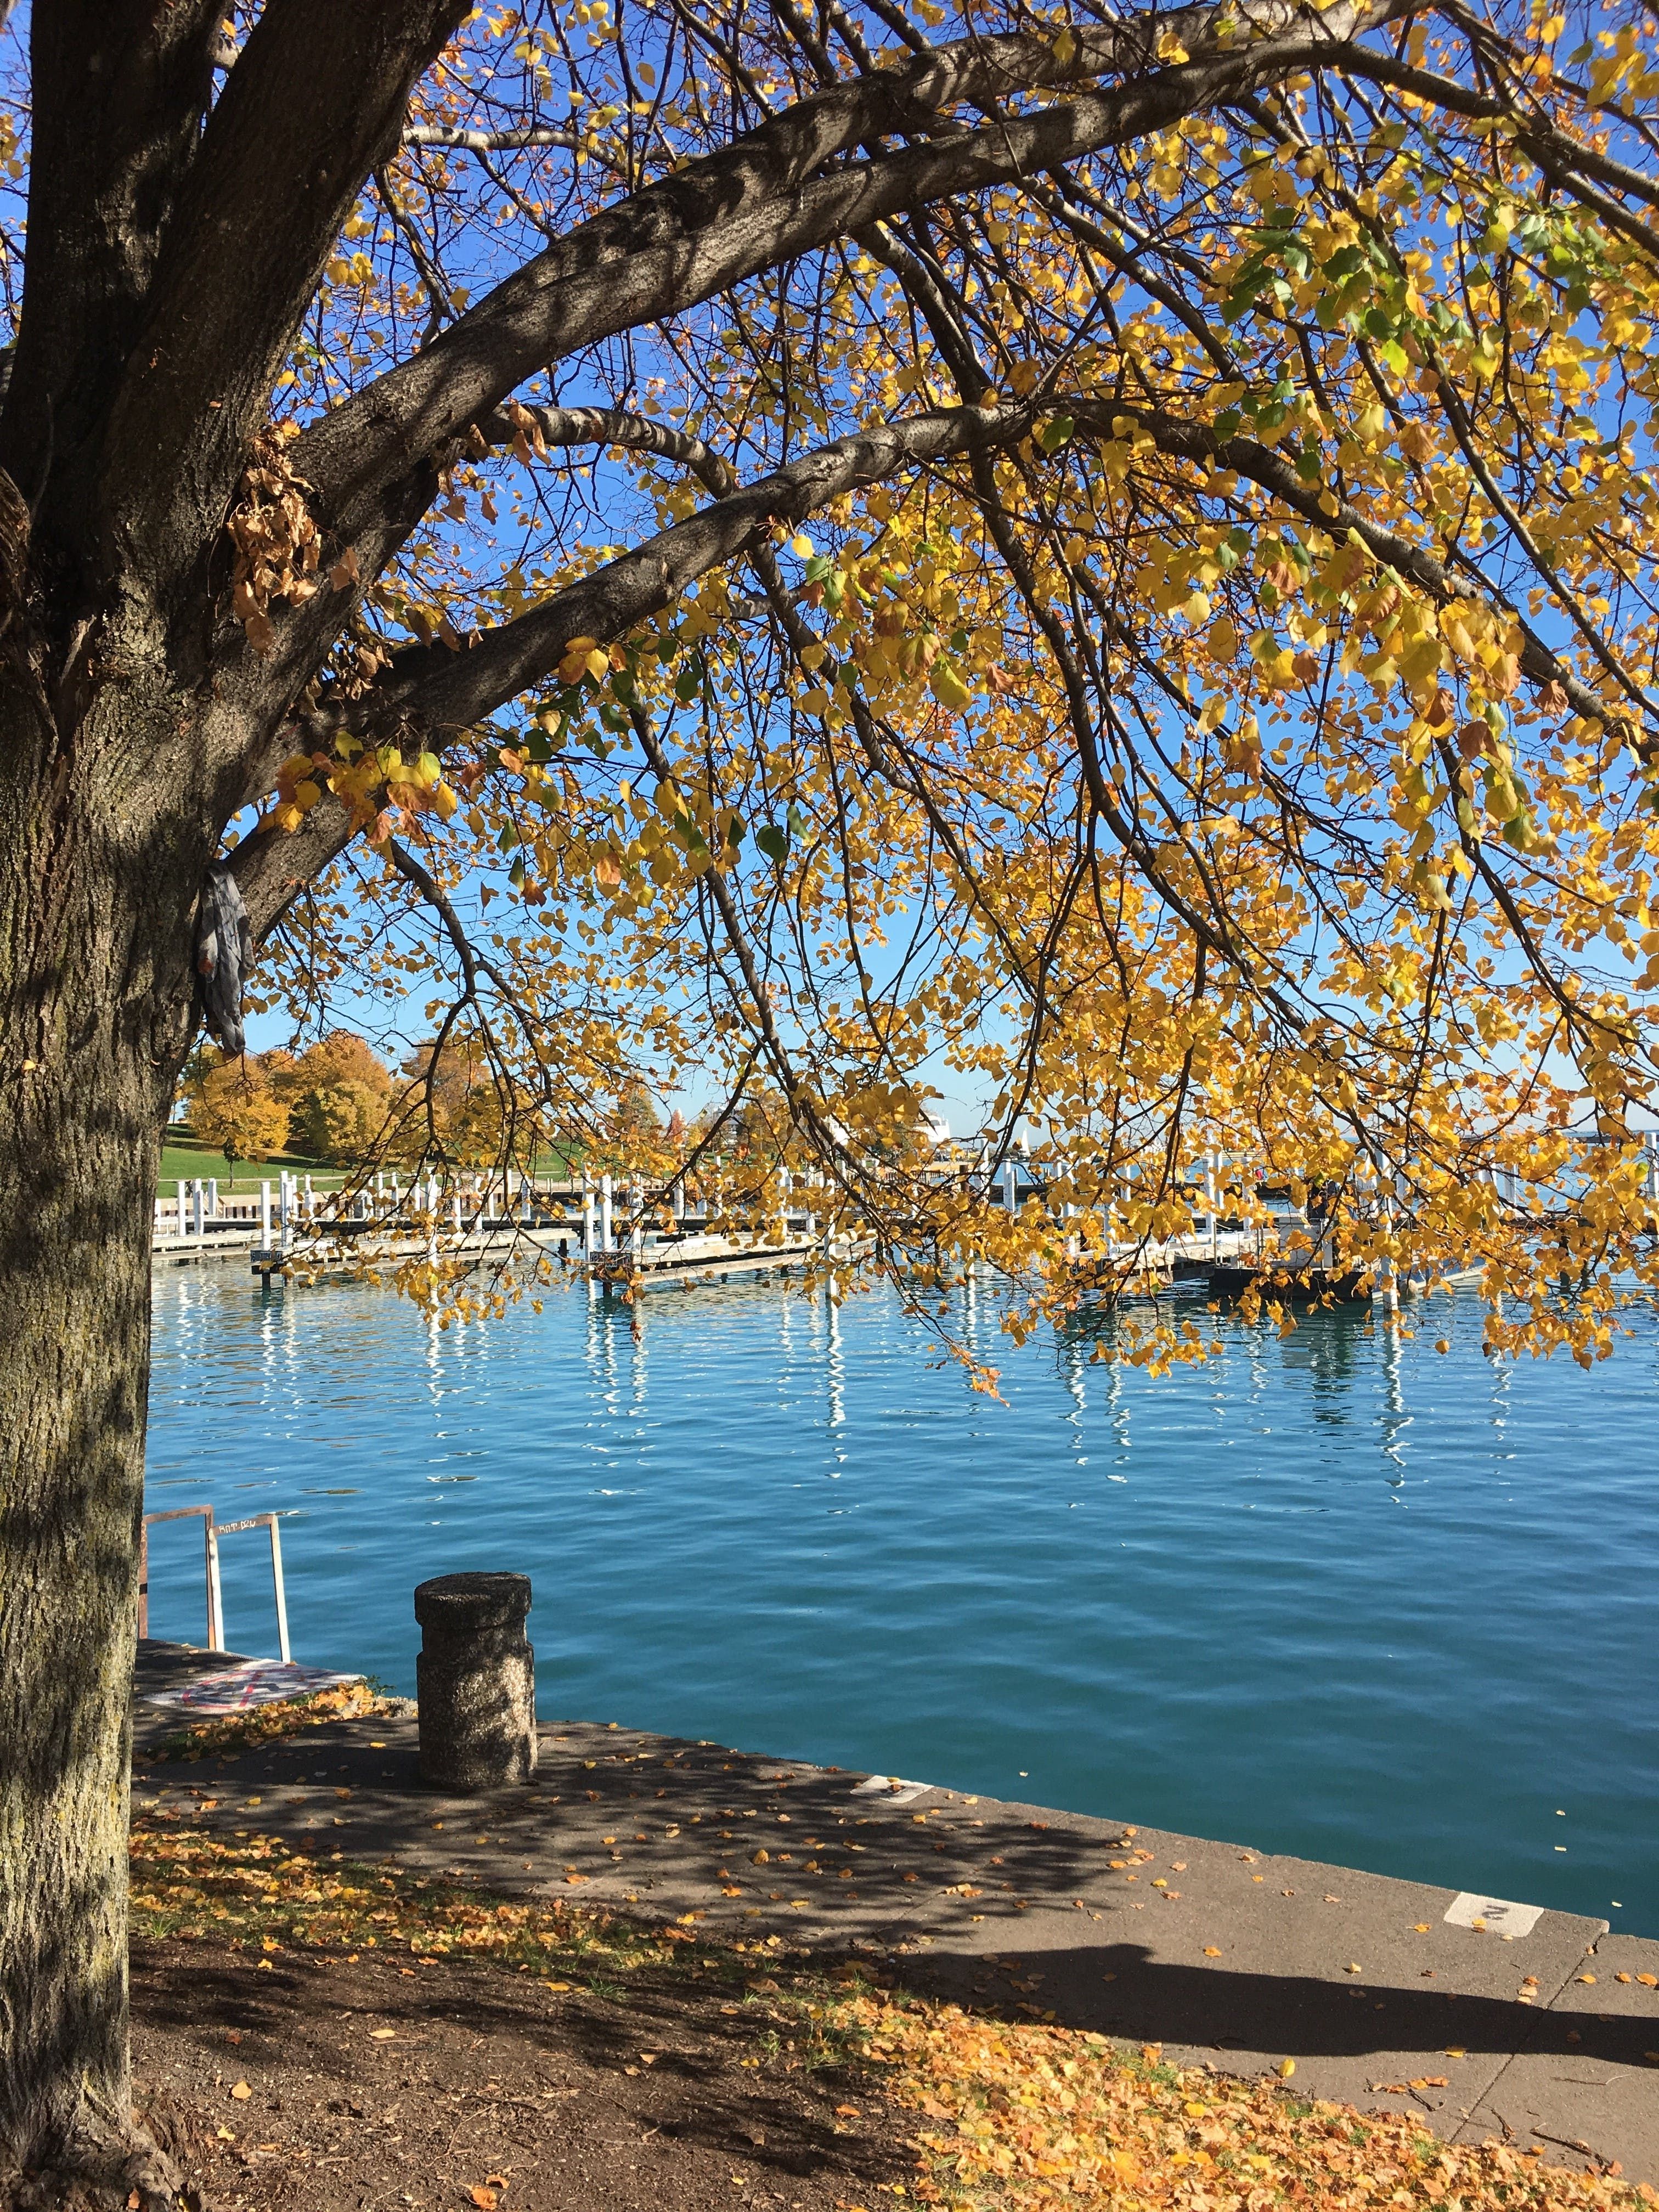 Yellow Leafed Tree Near Body of Water